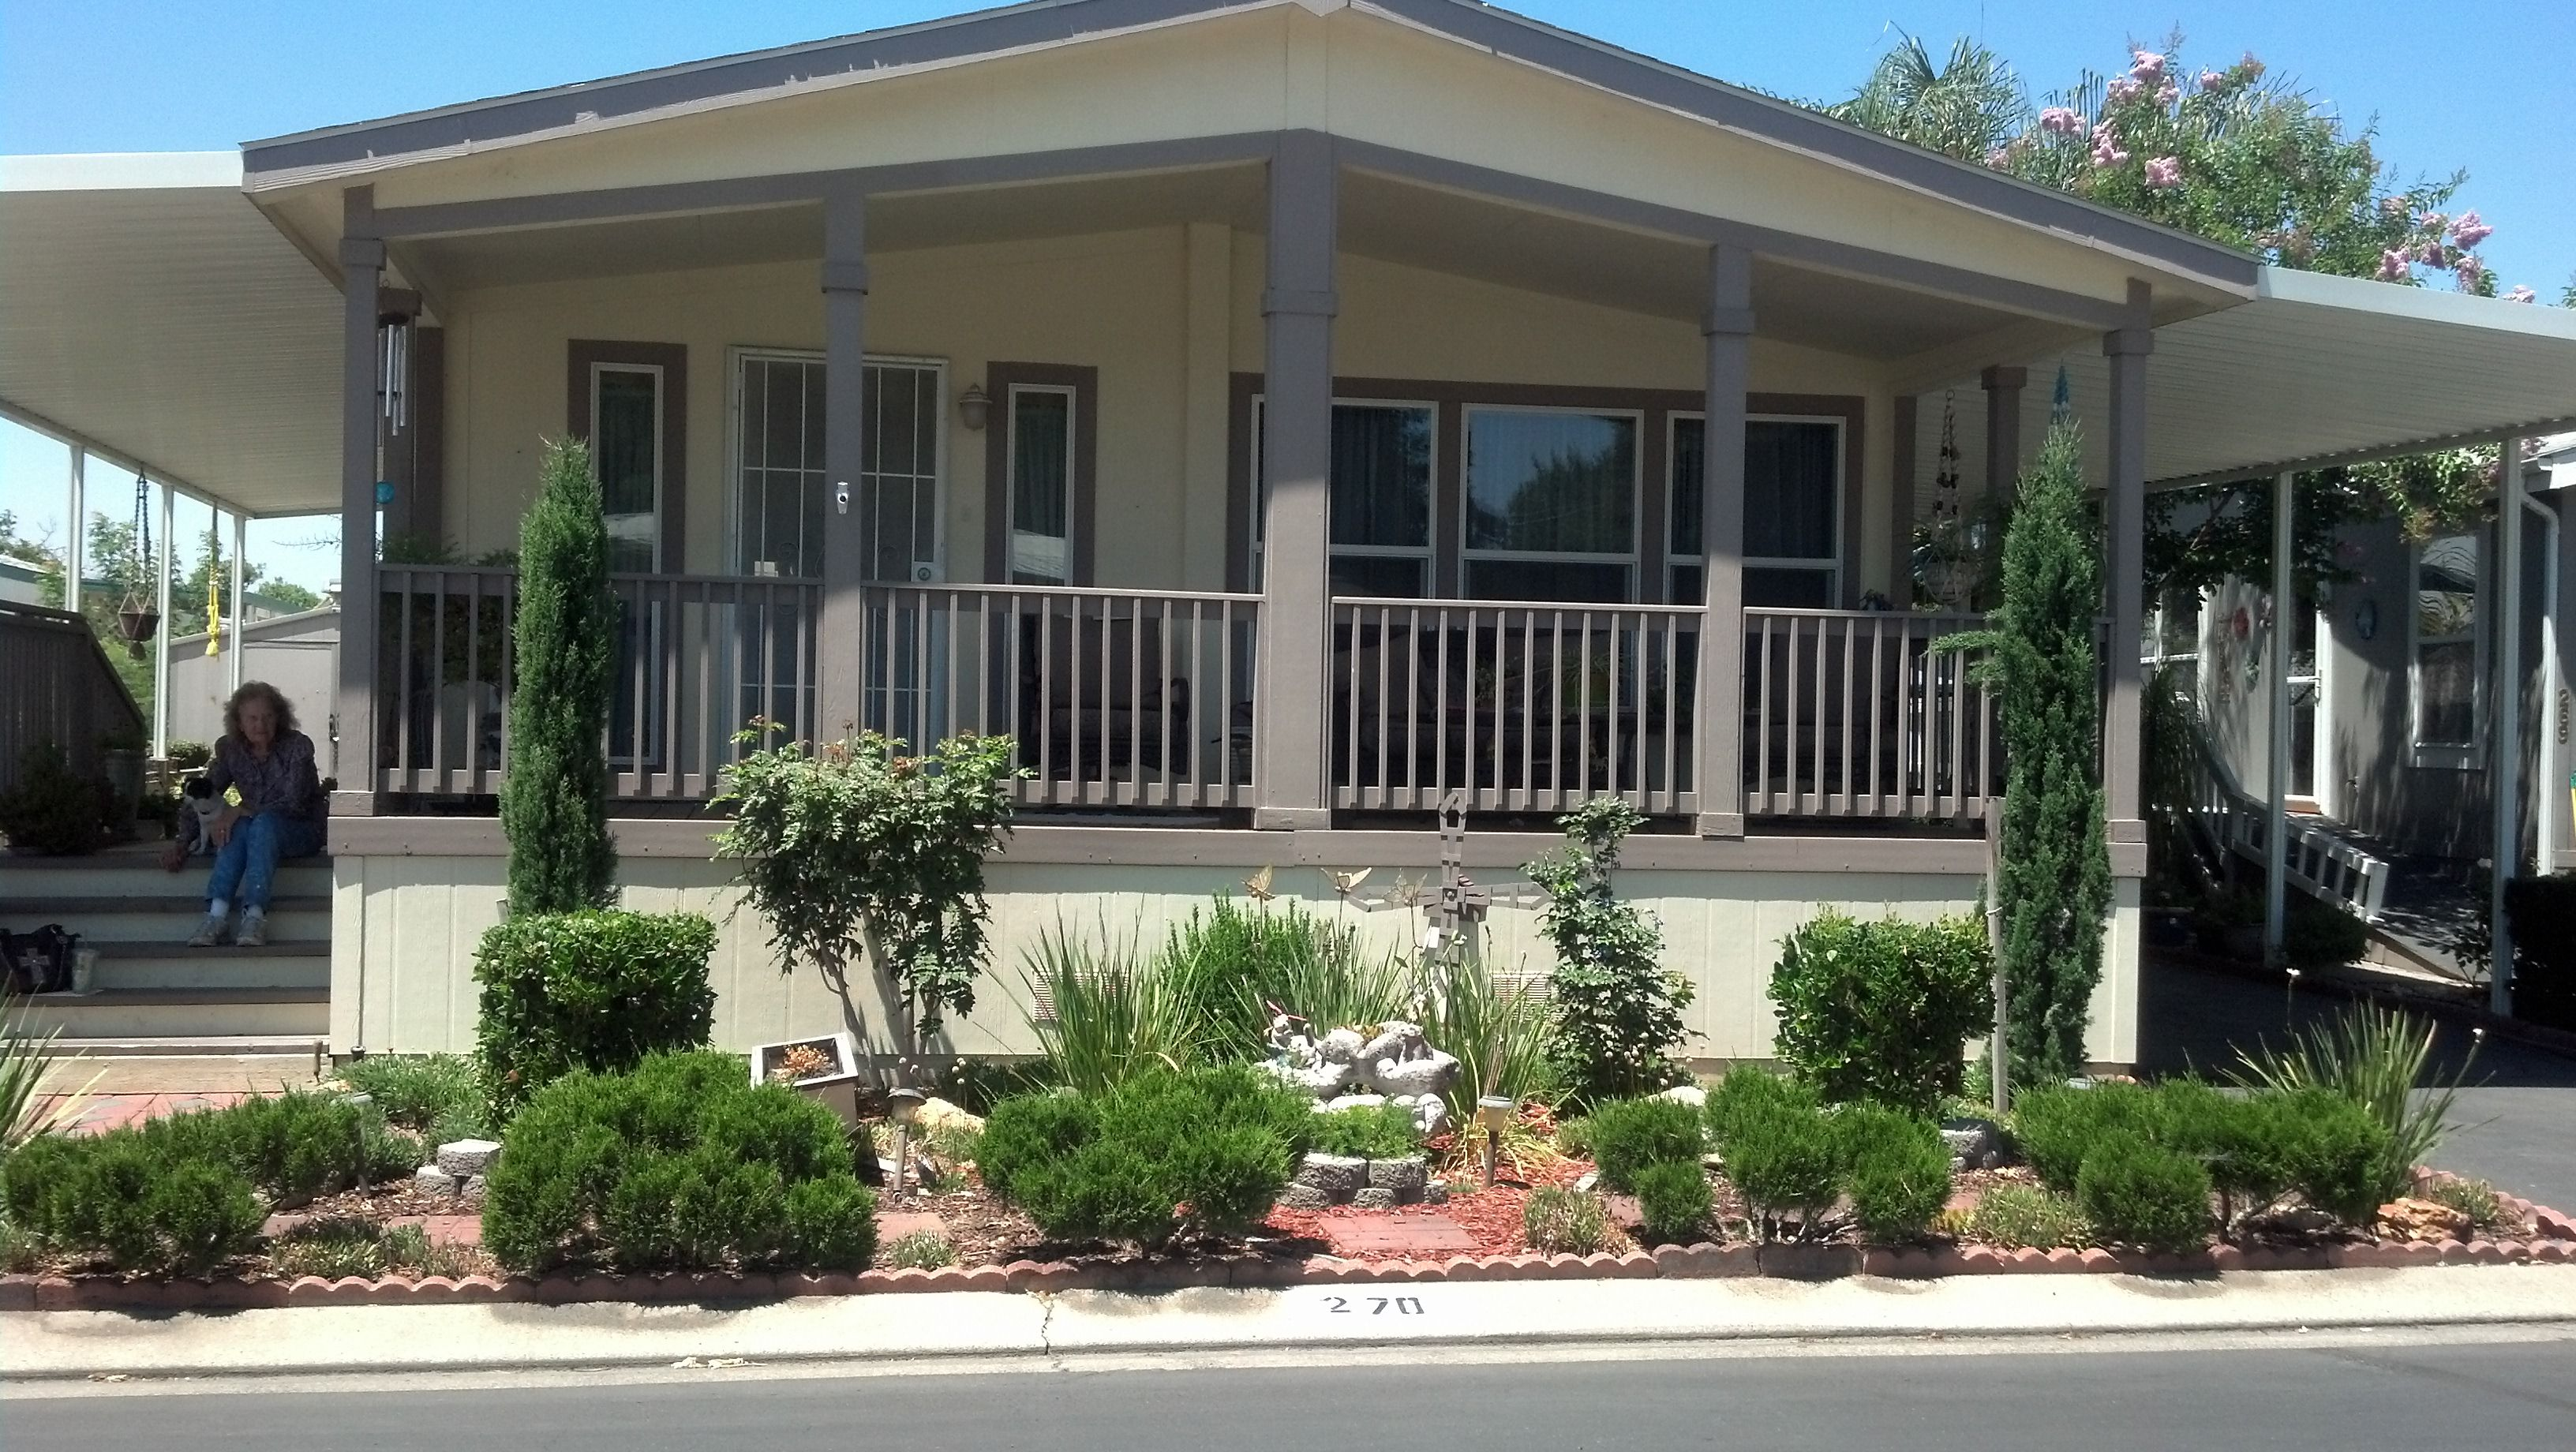 2009 Manufactured Home In Friendly Village 55 Park In Modesto Ca